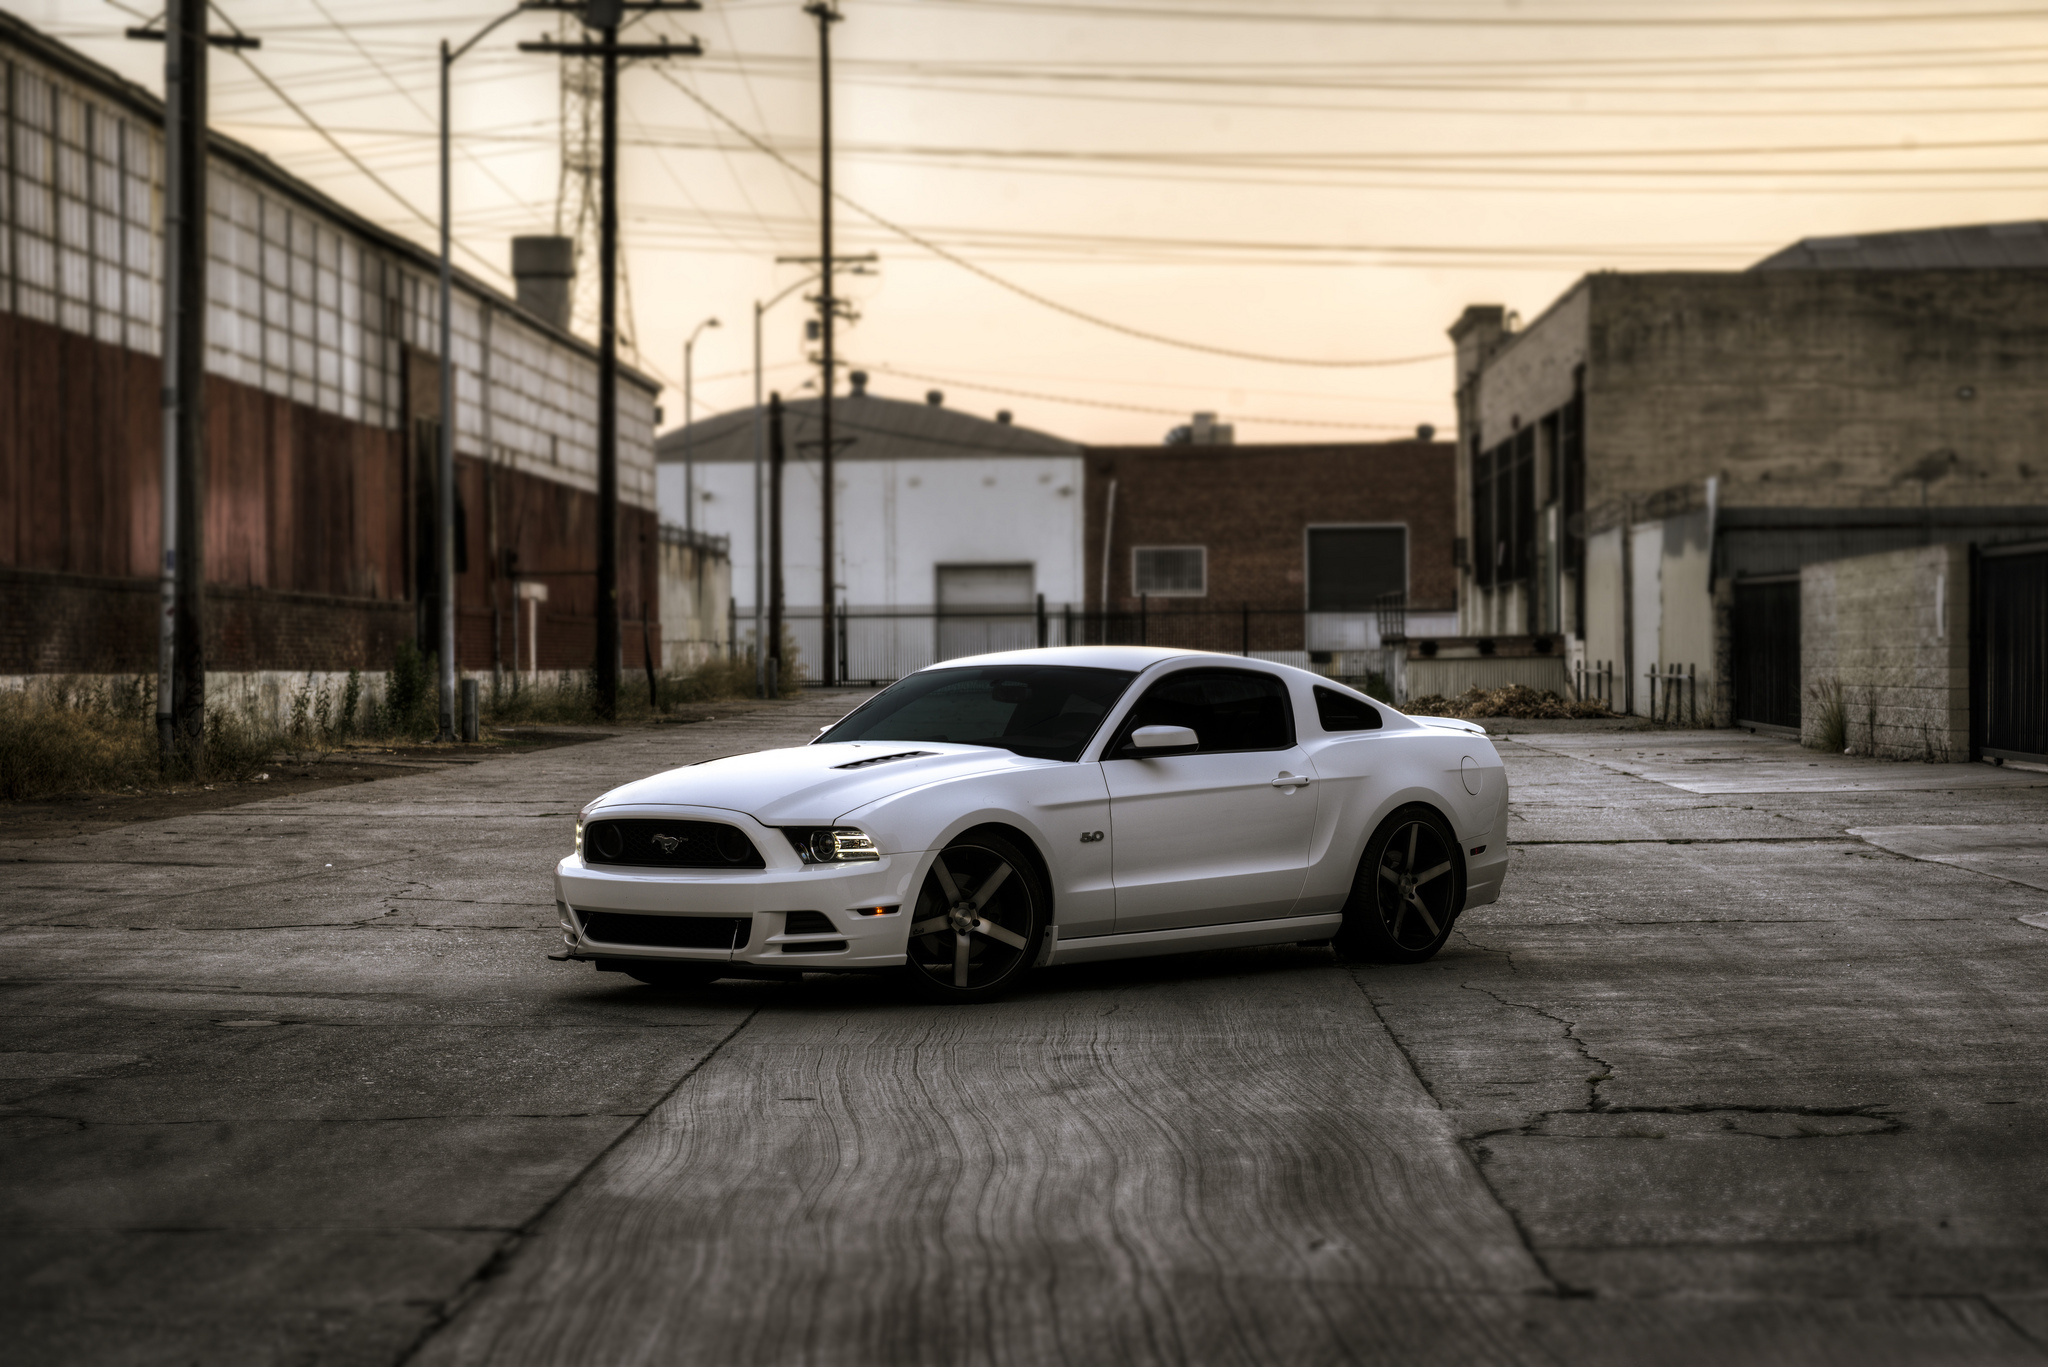 55842 download wallpaper Ford, Mustang, Cars, Side View, Gt screensavers and pictures for free